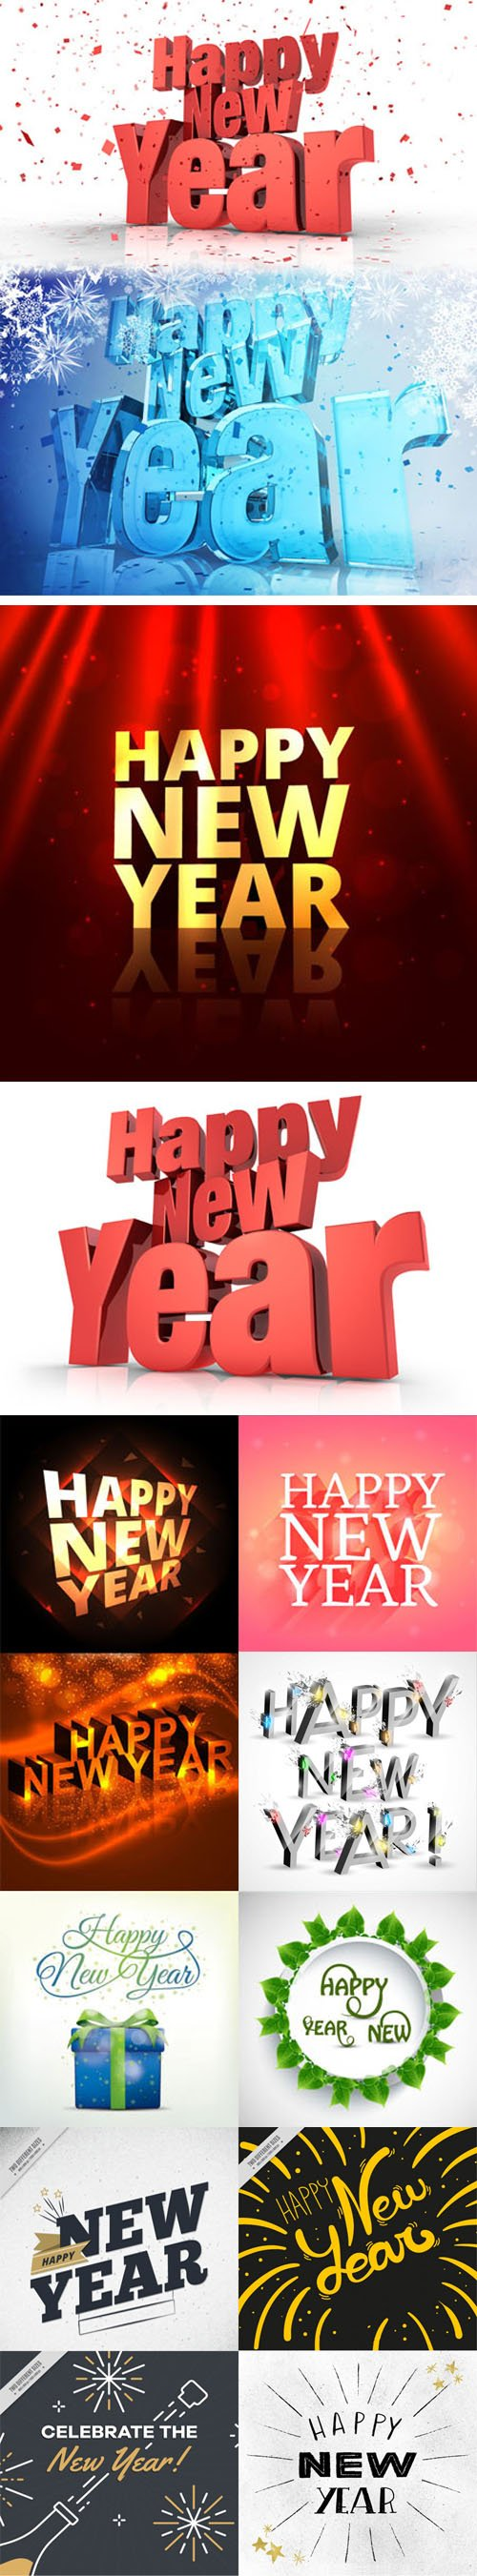 Happy New Year 2019 Background Vector Collection 3